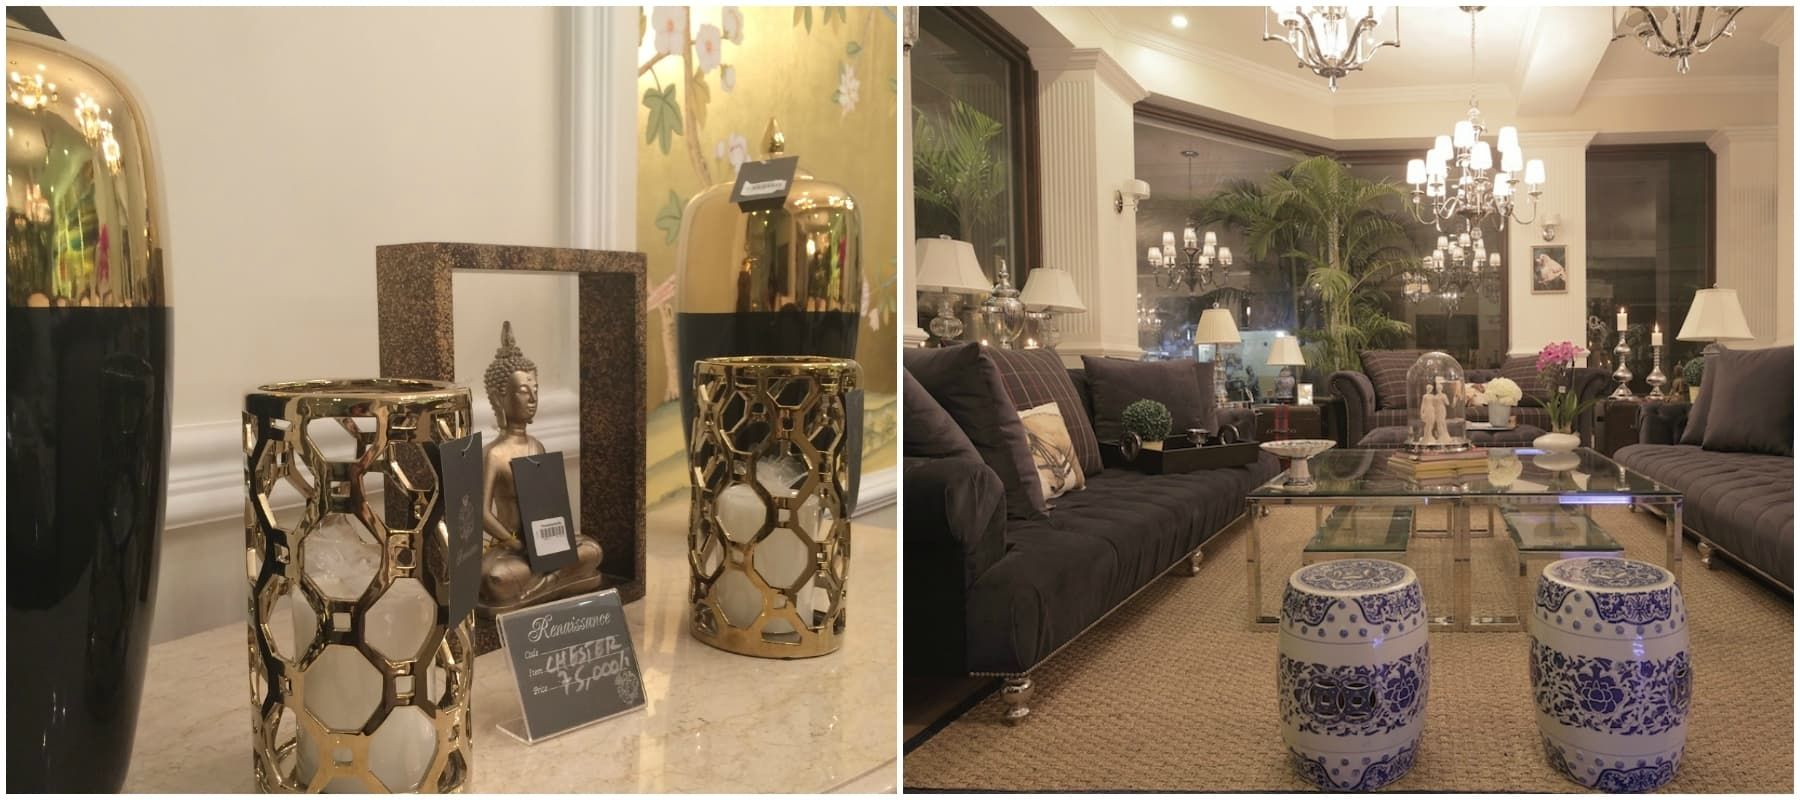 Top Picks For Home Decor These 10 Stores Get Interiors With